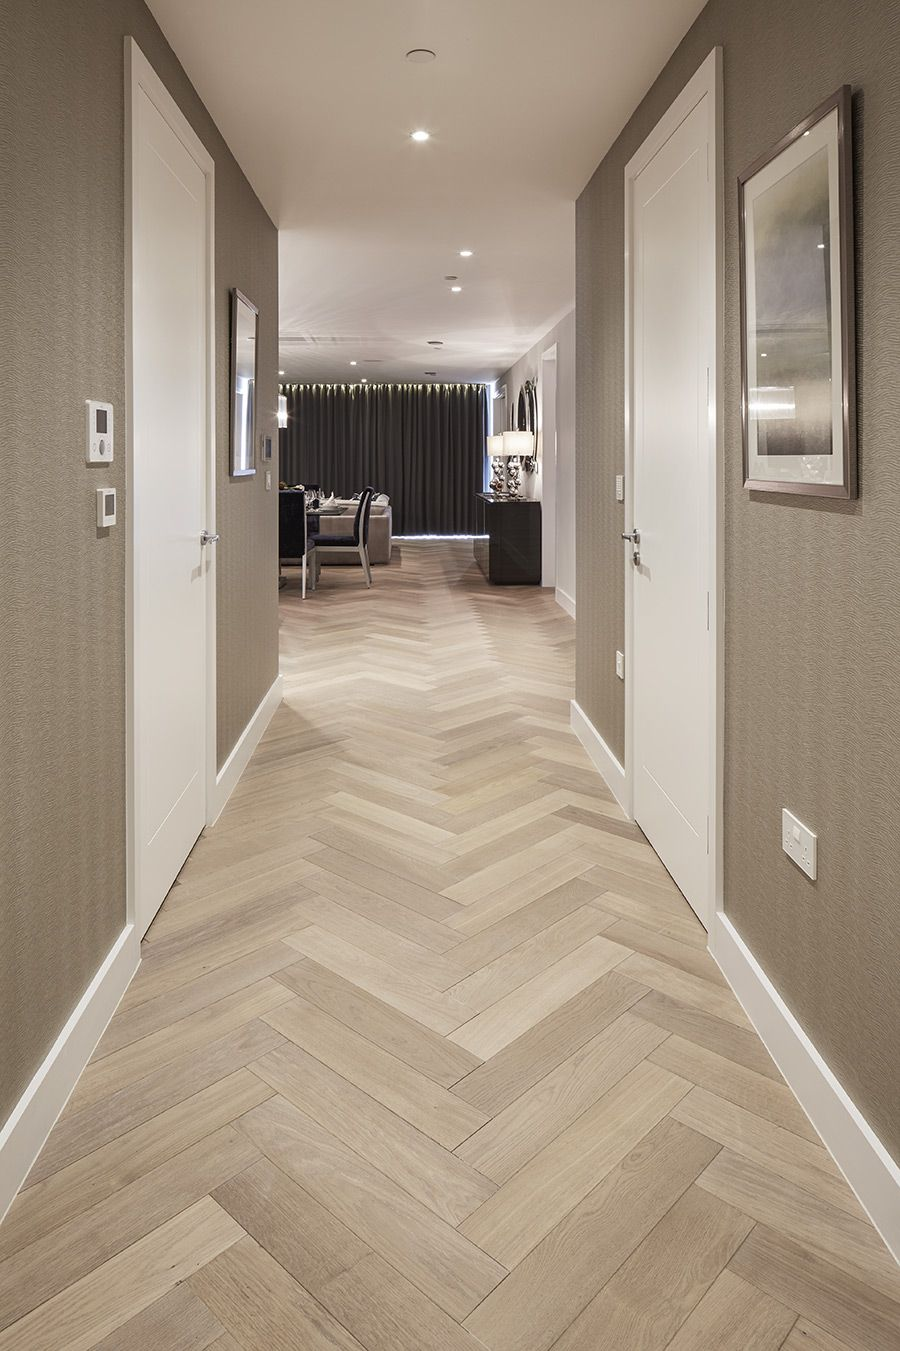 Wood Flooring Hw3001 Venture Plank Fendi Herringbone Wood Floor Design Wooden Floor Tiles Herringbone Wood Floor